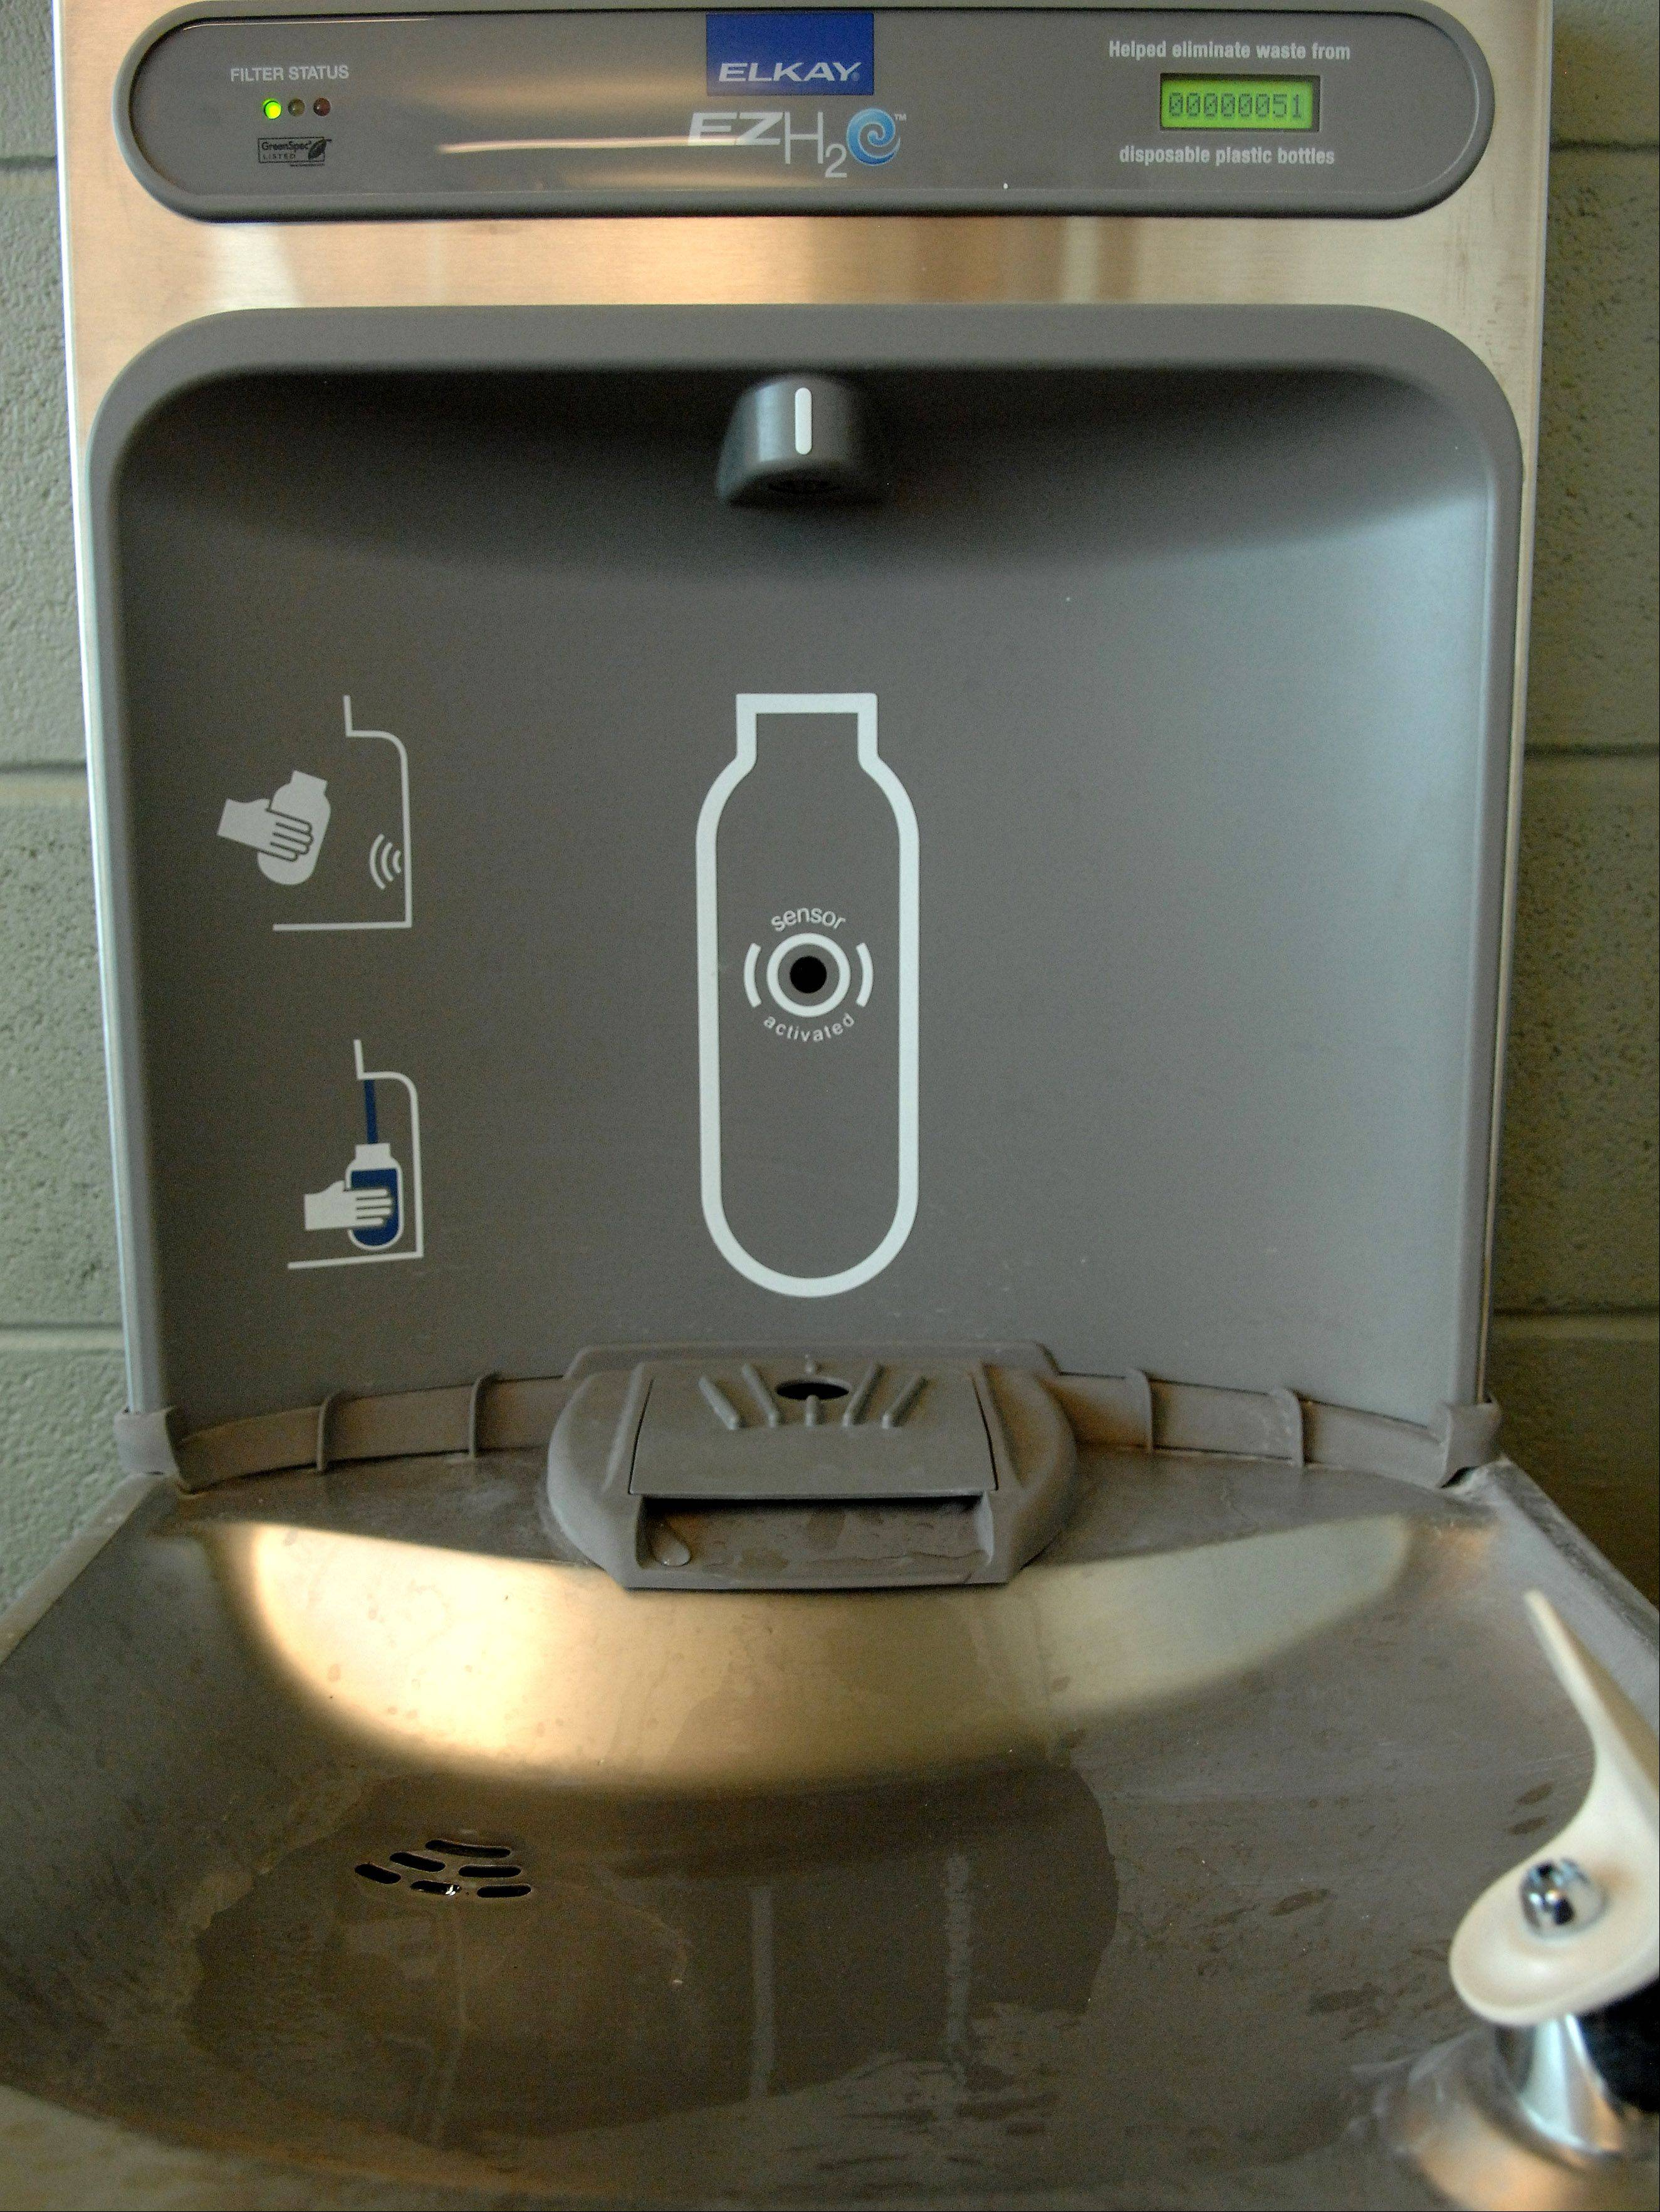 A water fountain doubles as a no-touch water bottle refill station.